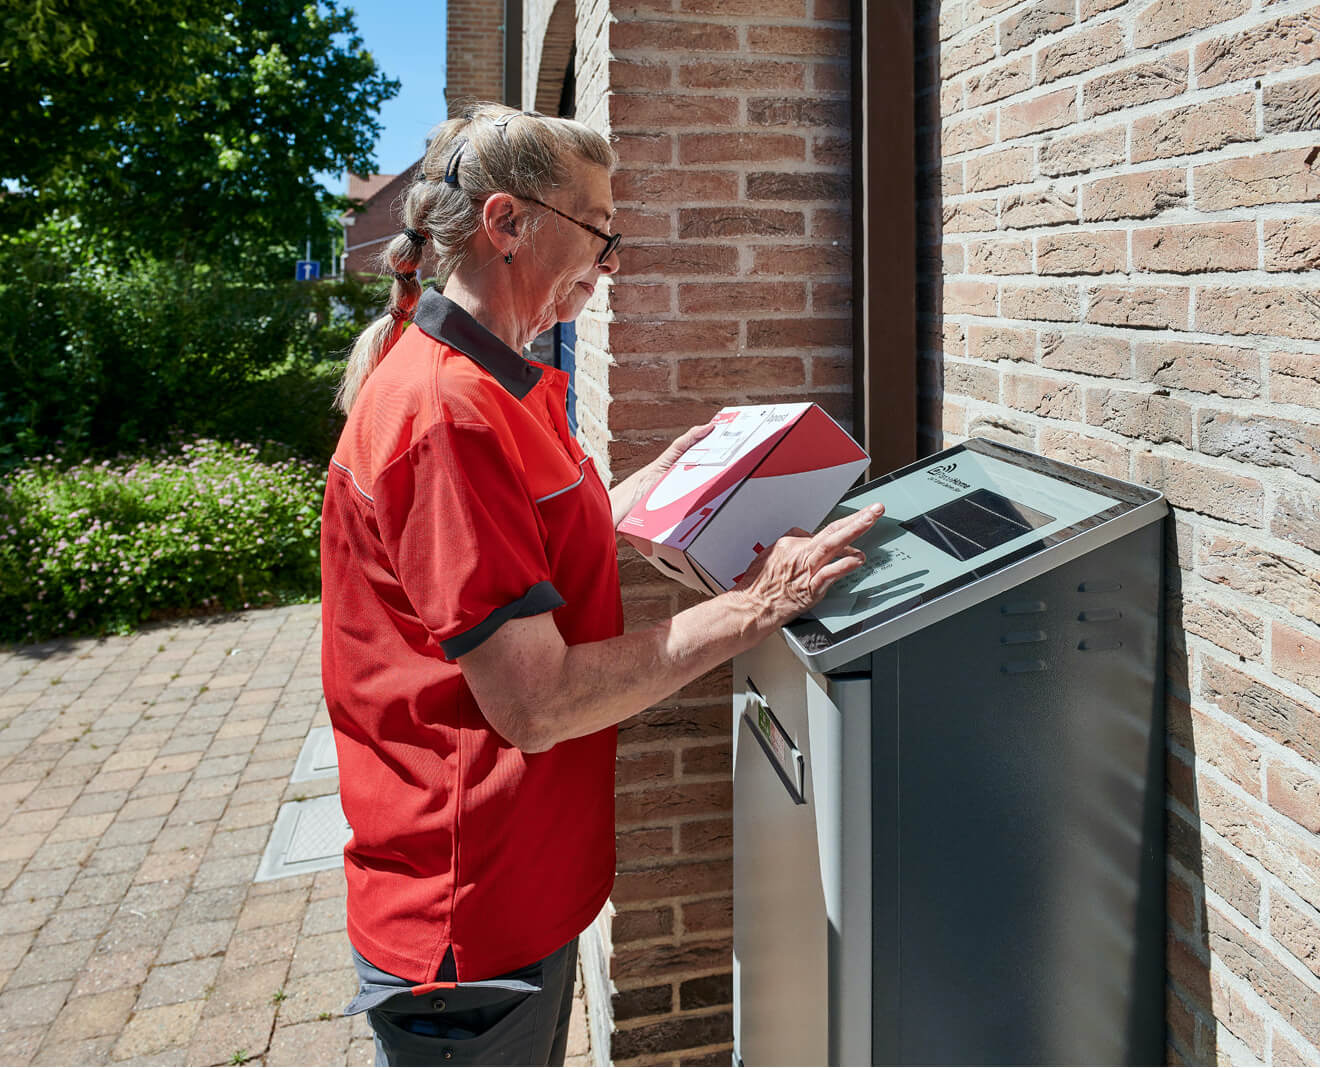 A Bpost courier delivers a parcel in a ParcelHome